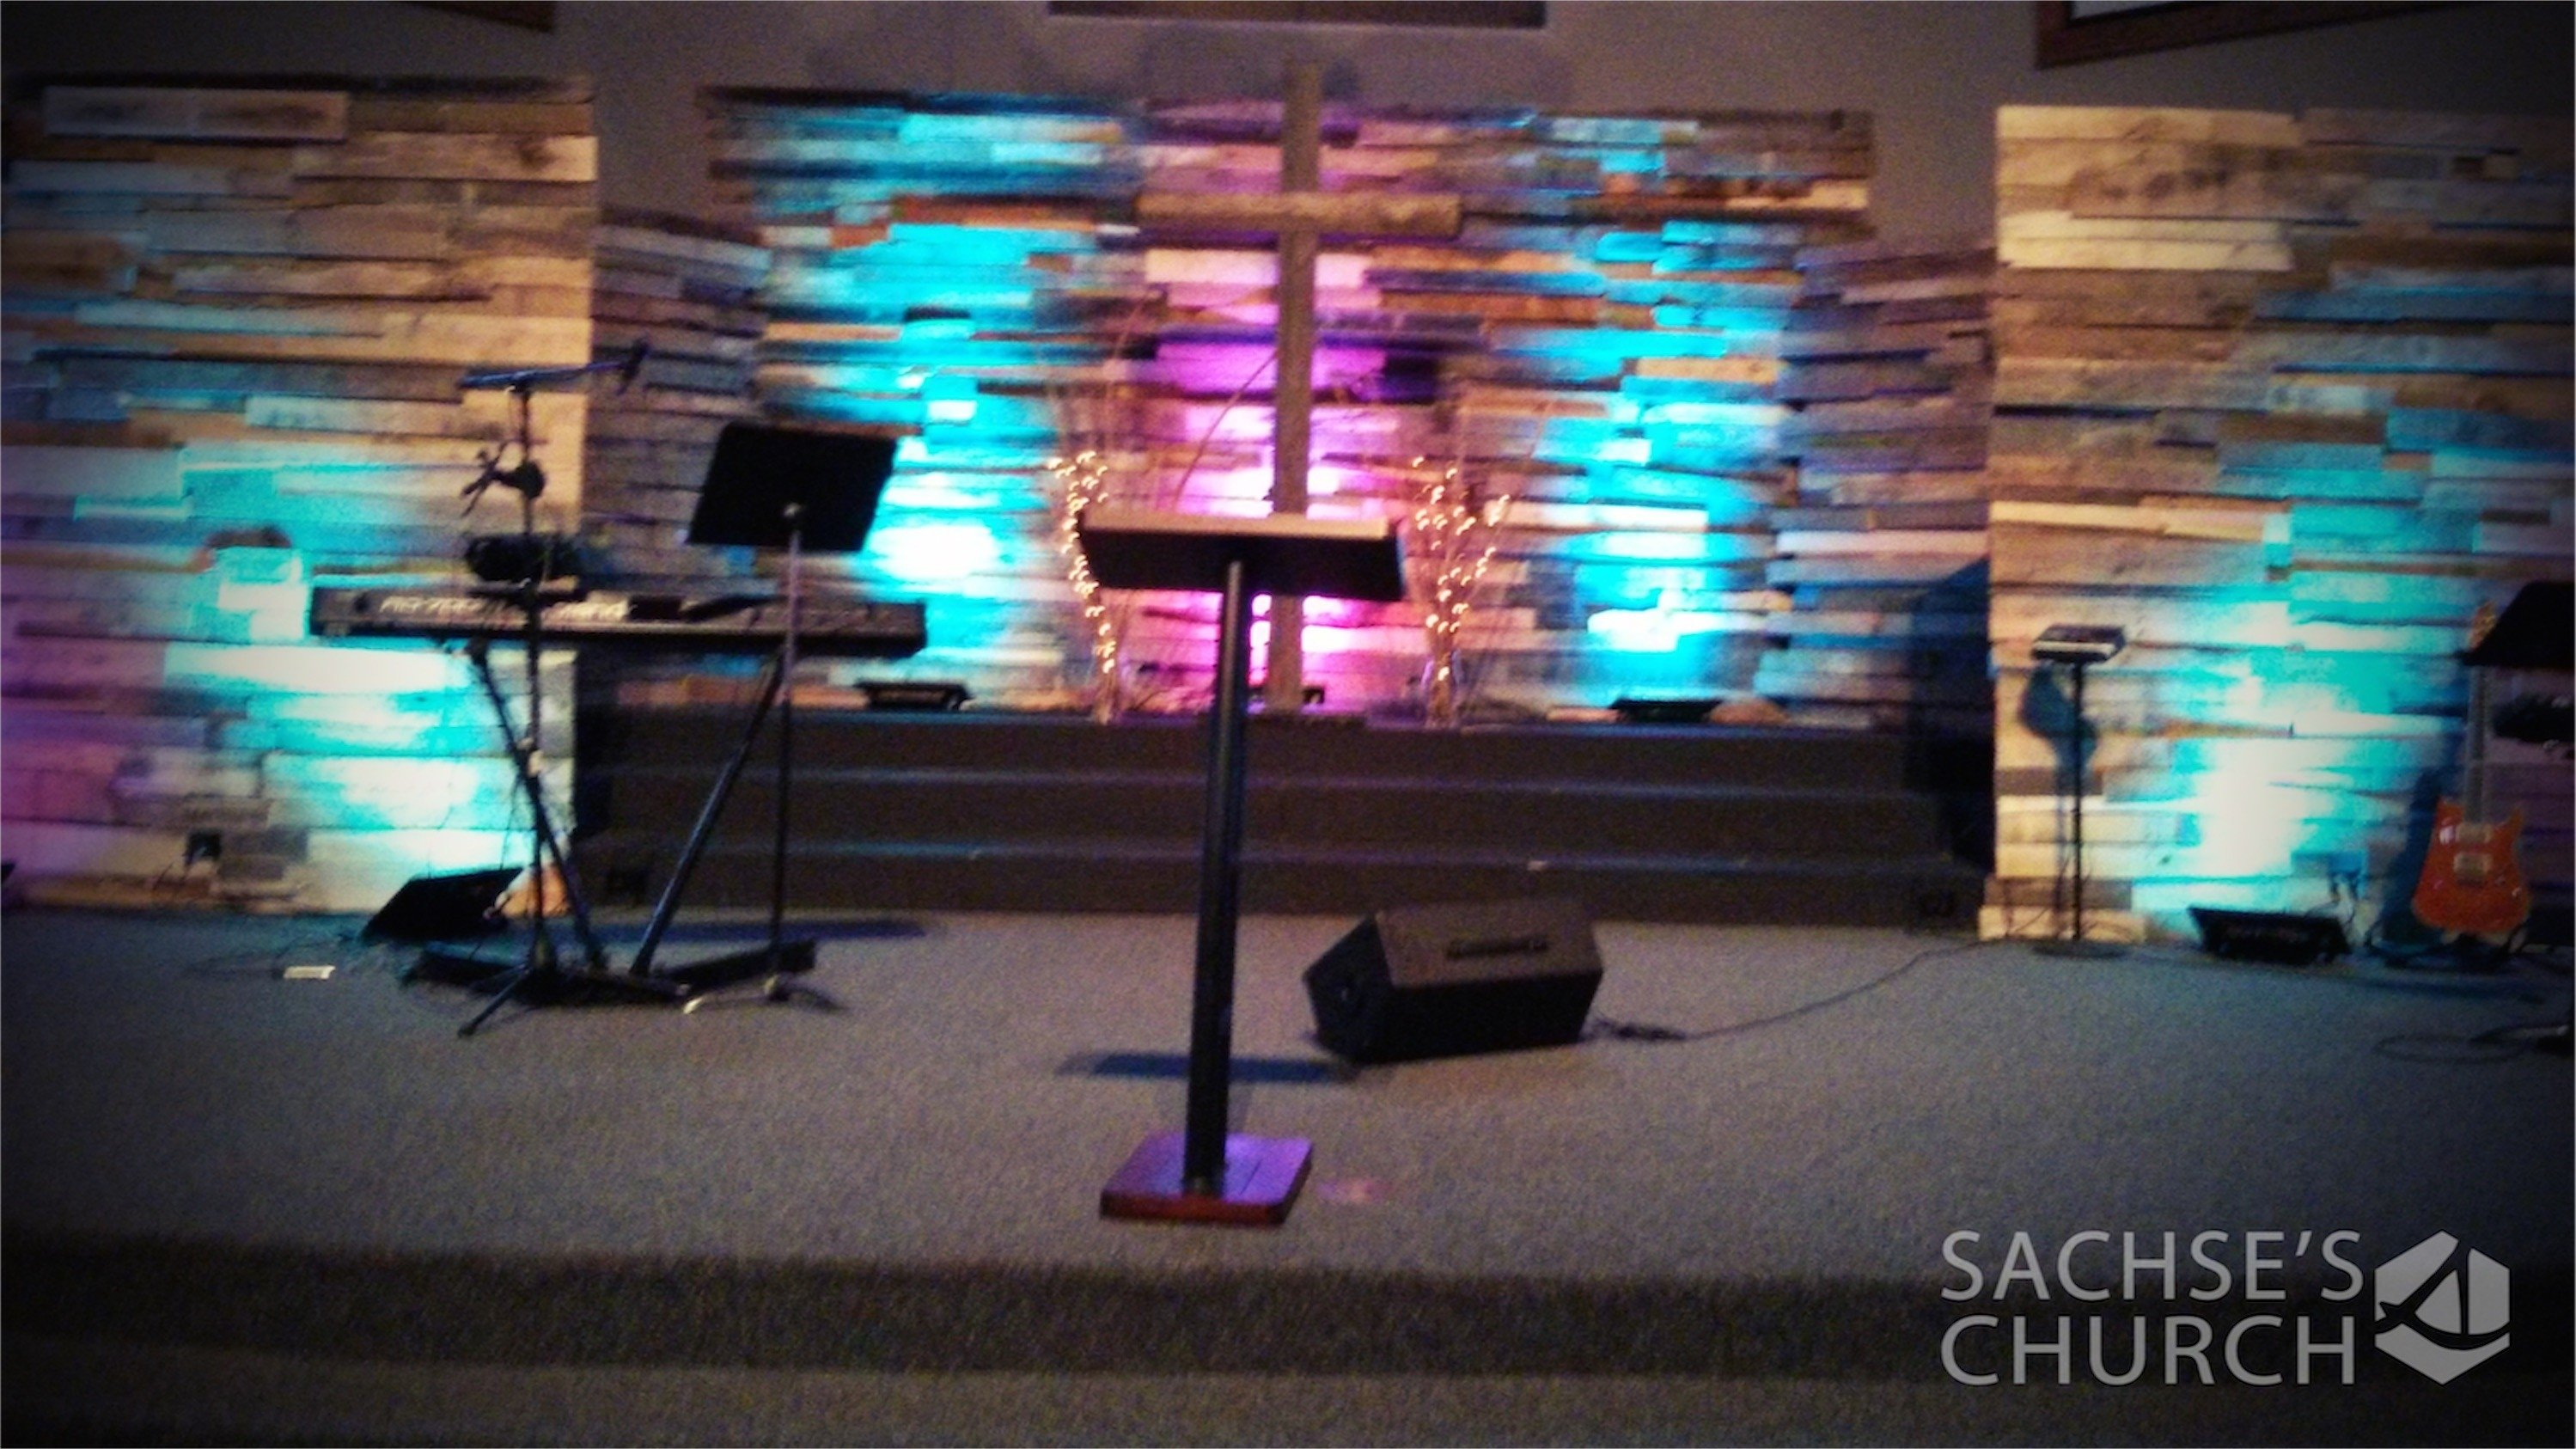 10 Unique Small Church Stage Design Ideas small church stage design ideas adam west from sachse s church in 2020